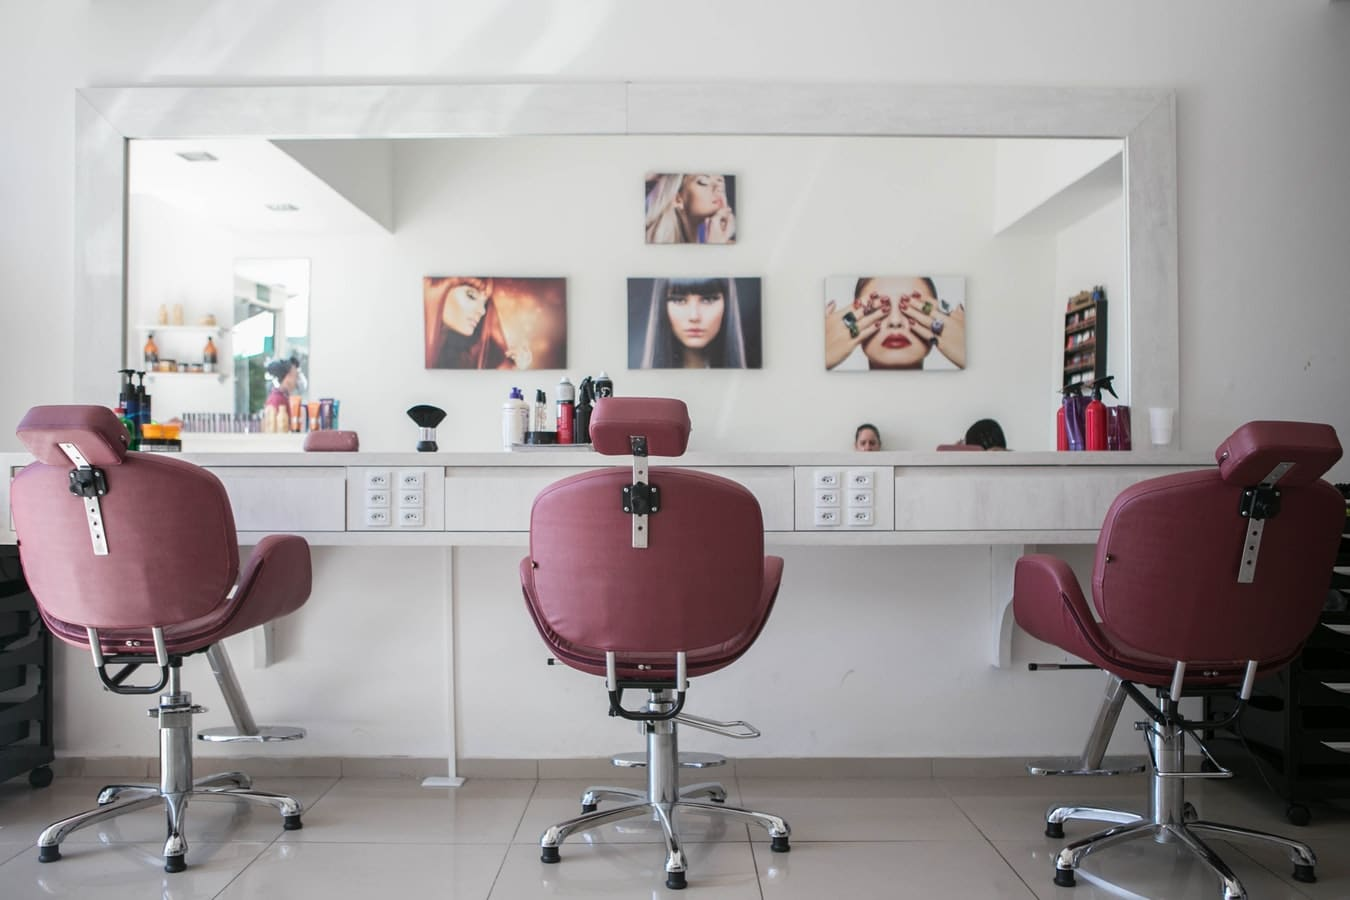 Best Hair Salons for Haircuts in Bangalore | 15 Salons to visit if you're in the city!